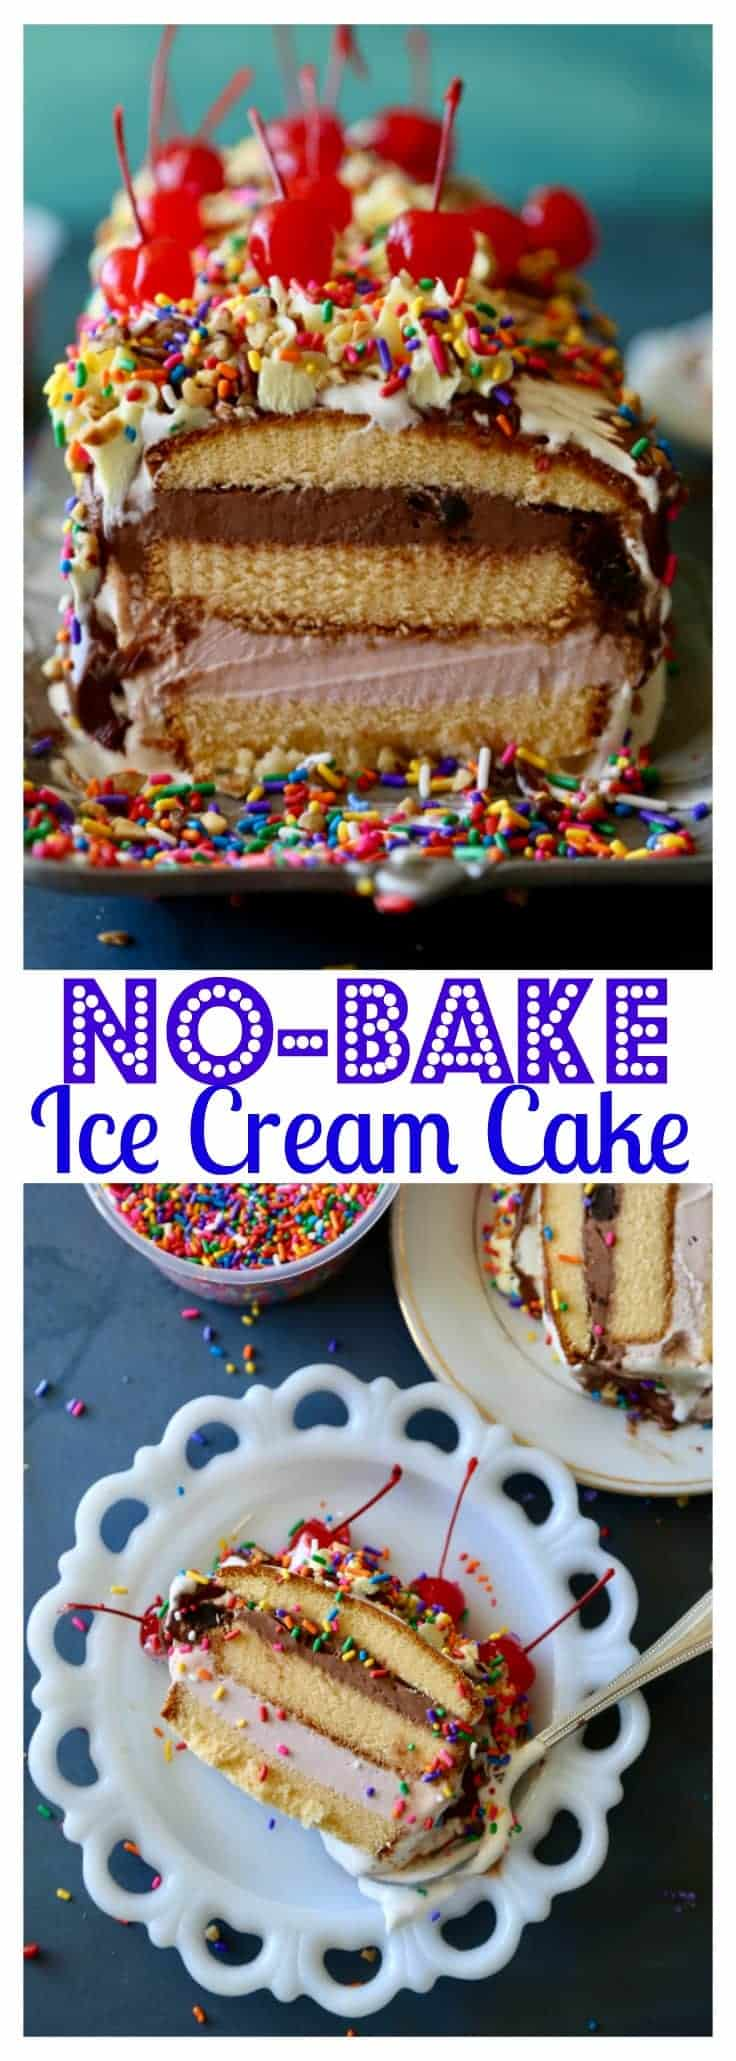 This No Bake Ice Cream Cake has layers of pound cake, your favorite ice cream flavors and is covered by yummy cool whip! Add your favorite toppings, like hot fudge, sprinkles and whipped cream and you will have a delicious dessert ready in no time!